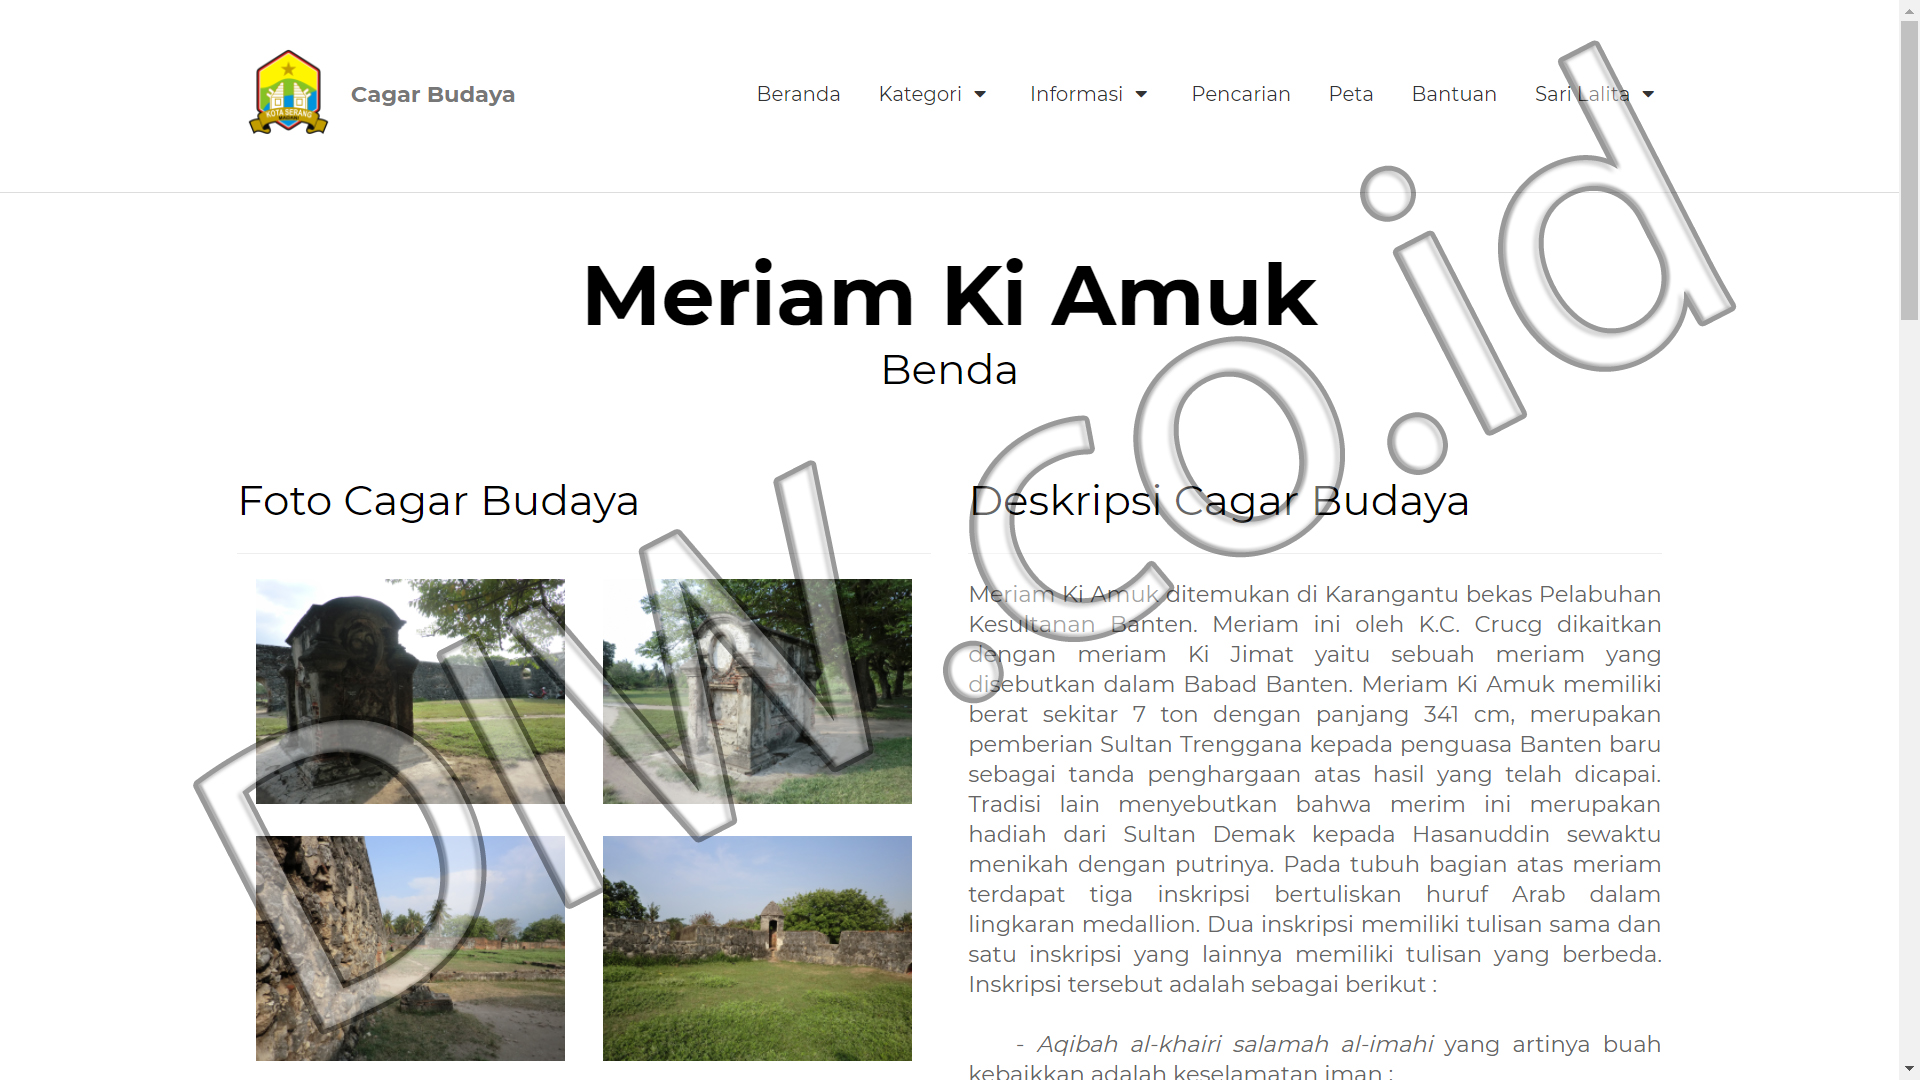 Portfolio 4 - Cagar Budaya - Andri Sunardi - Freelancer - Web Developer - CEO DIW.co.id